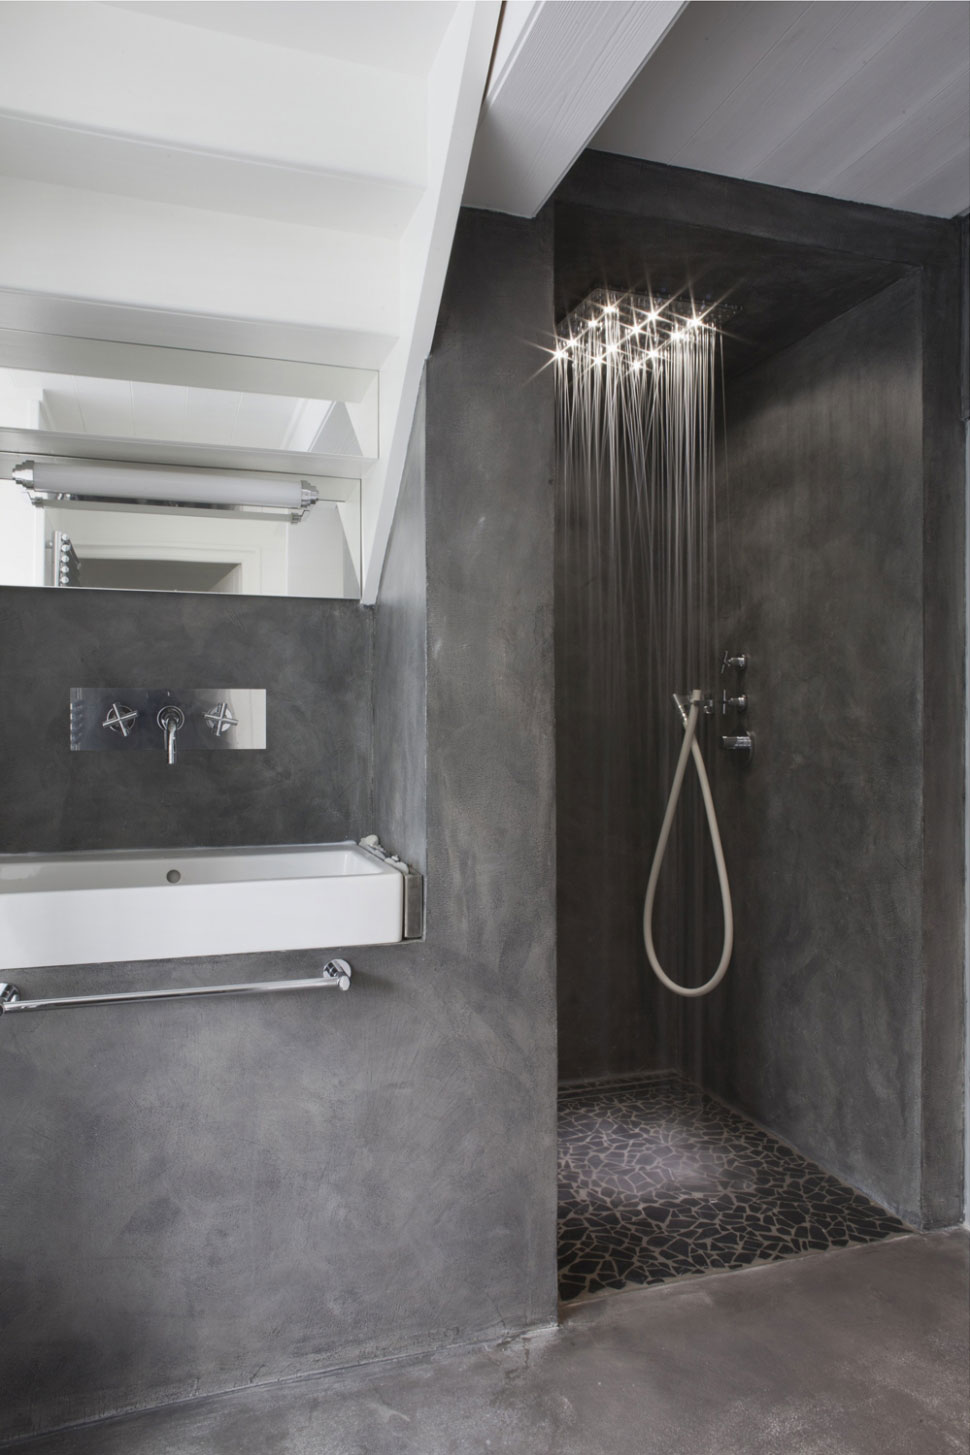 Cool Shower Head Invades Every Bathroom with Style and ...